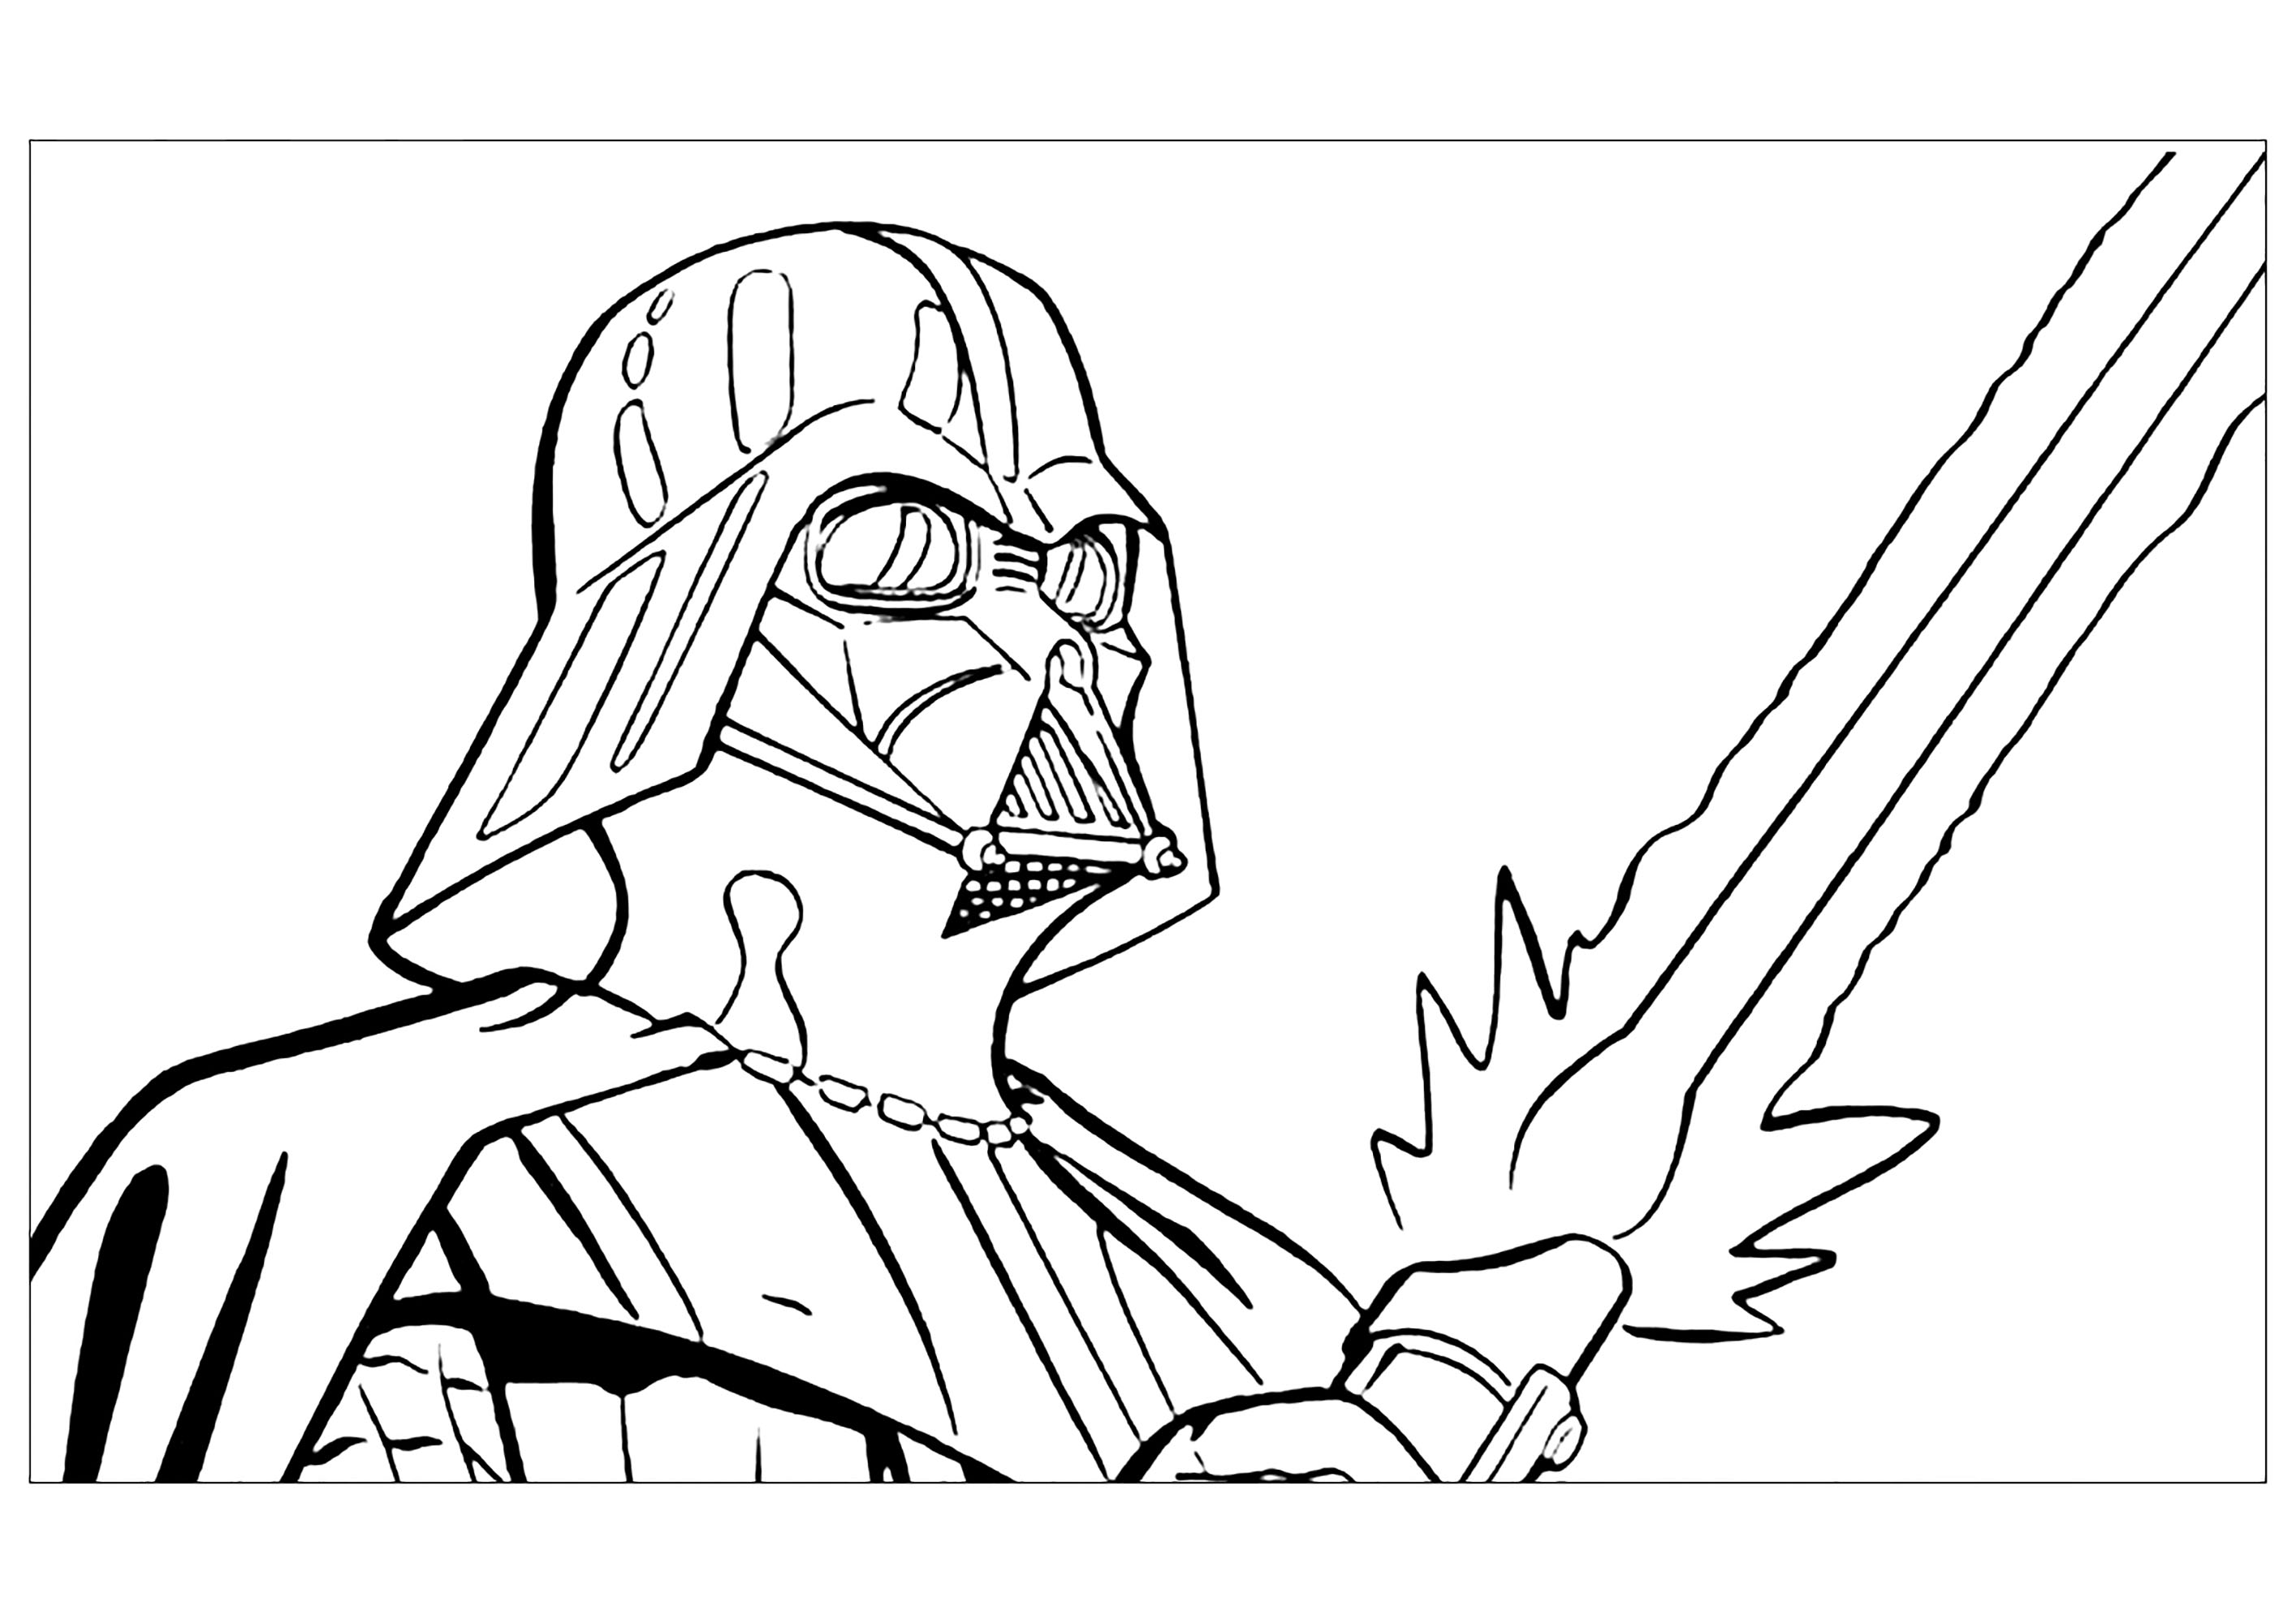 star wars colouring for kids star wars stormtrooper coloring page coloring kids star wars kids colouring for